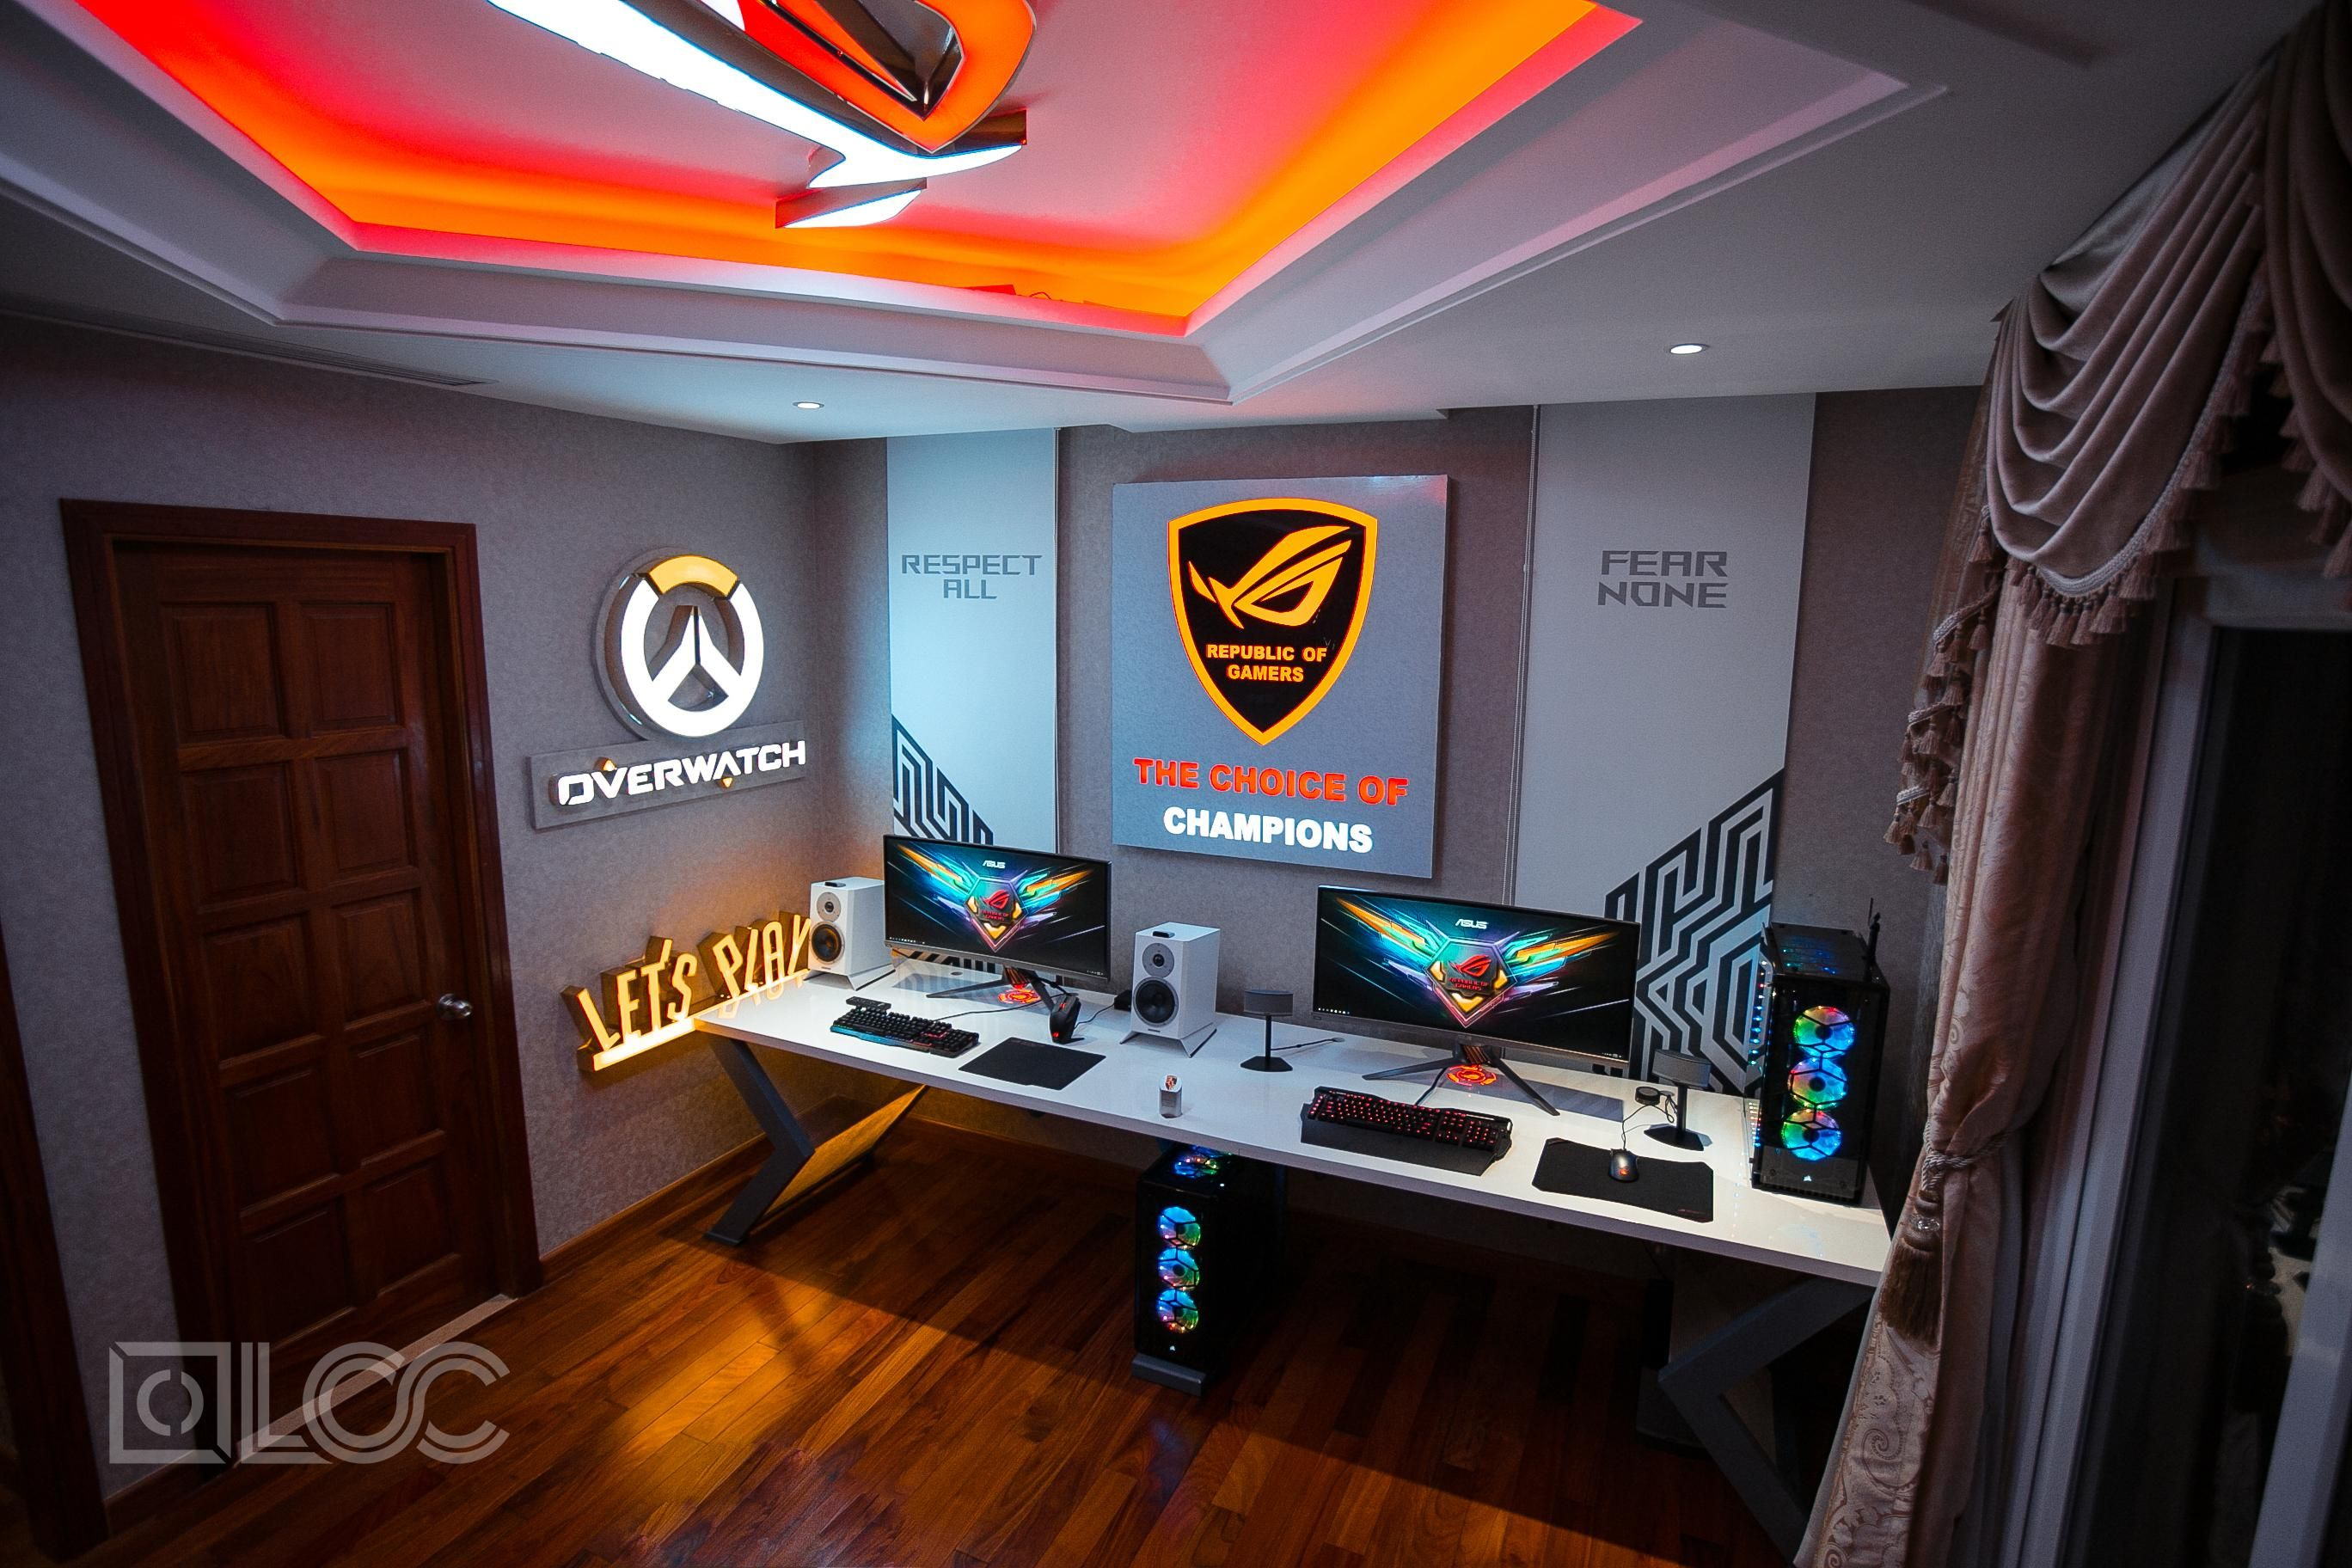 Beau Video Game Room Ideas, Game Room Setup, Gaming Setup For Bedroom, PC Game  Setup, Gaming Console Room Setup, Entertainment Room, Menu0027s Cave, Boyu0027s  Cave, ...